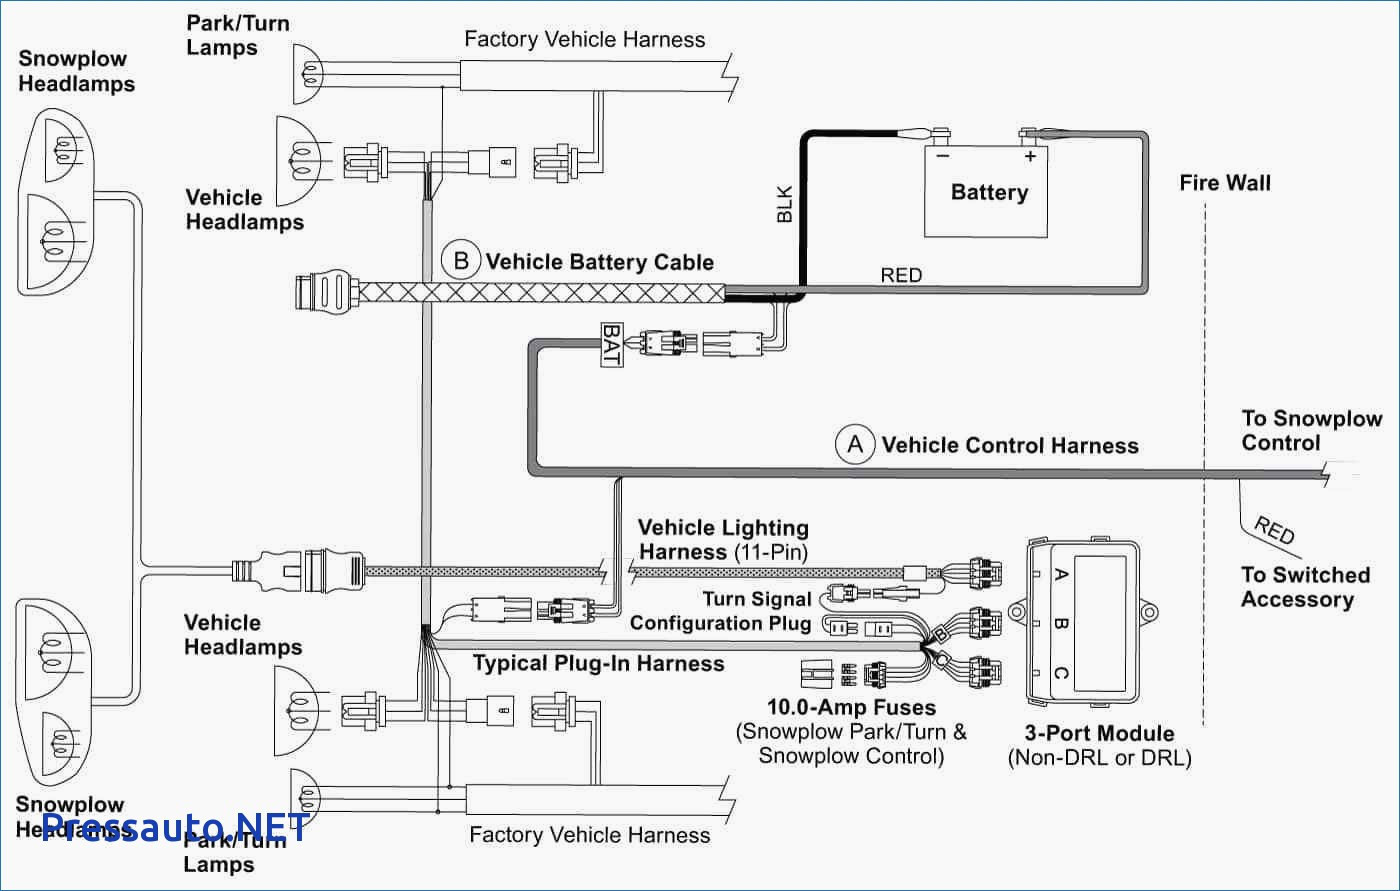 Dodge Western Plow Wiring Diagram | Wiring Diagram - Western Unimount Plow Wiring Diagram